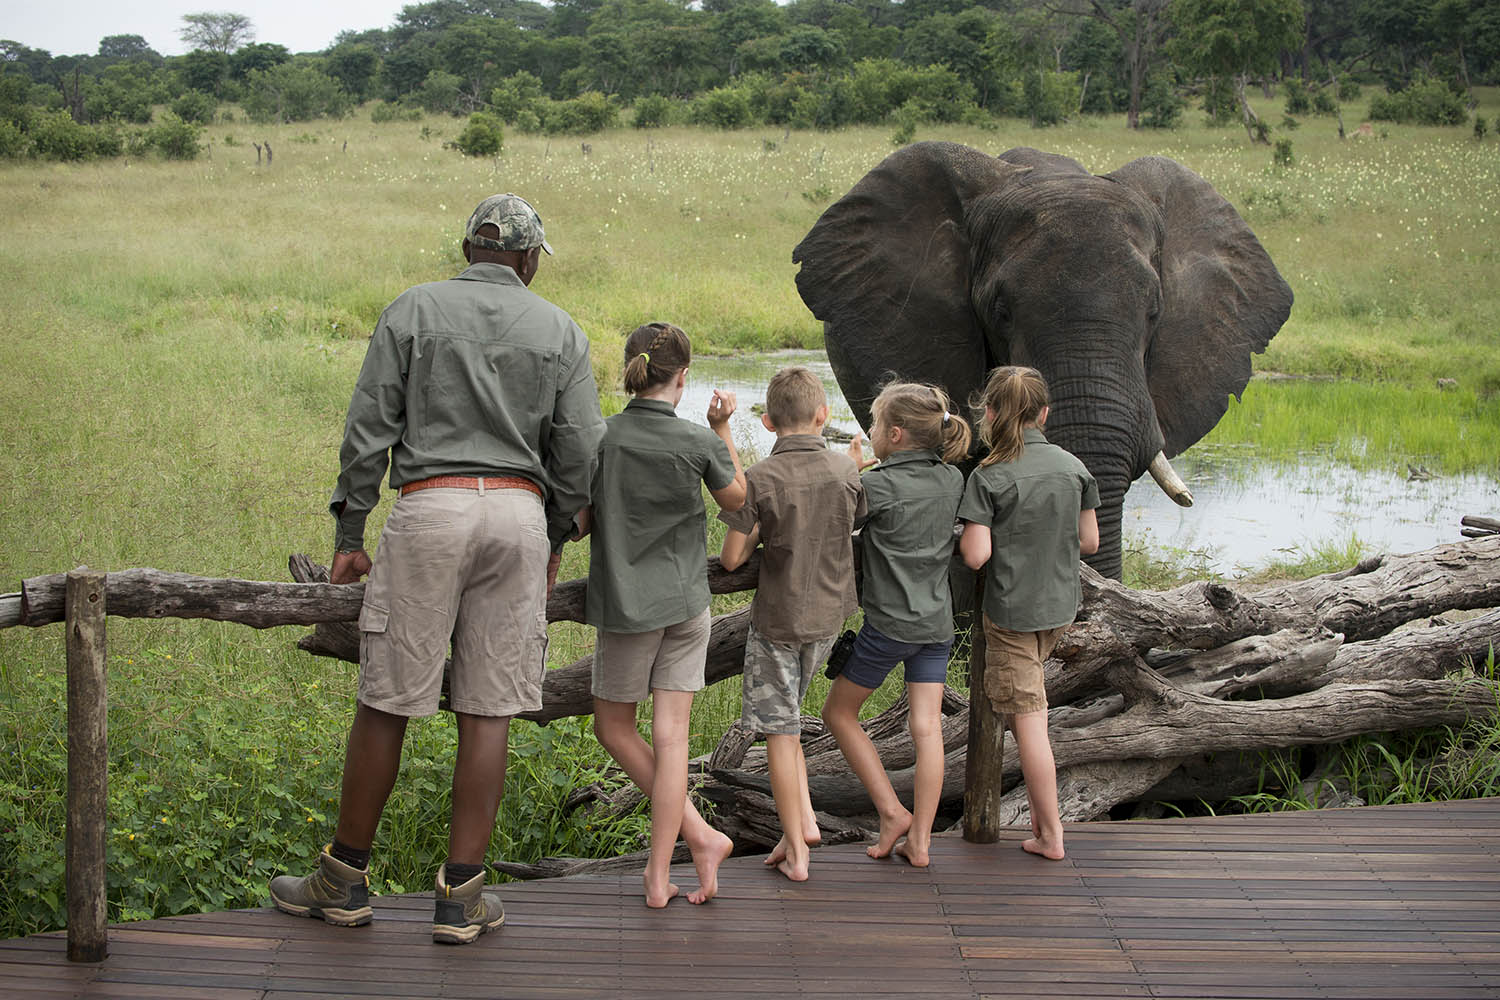 somalisa acacia zimbabwe-lodges-zambia-in-style-safaris-wildlife-africa-hwange-national-park-friendly-staff-guide-elephant-deck